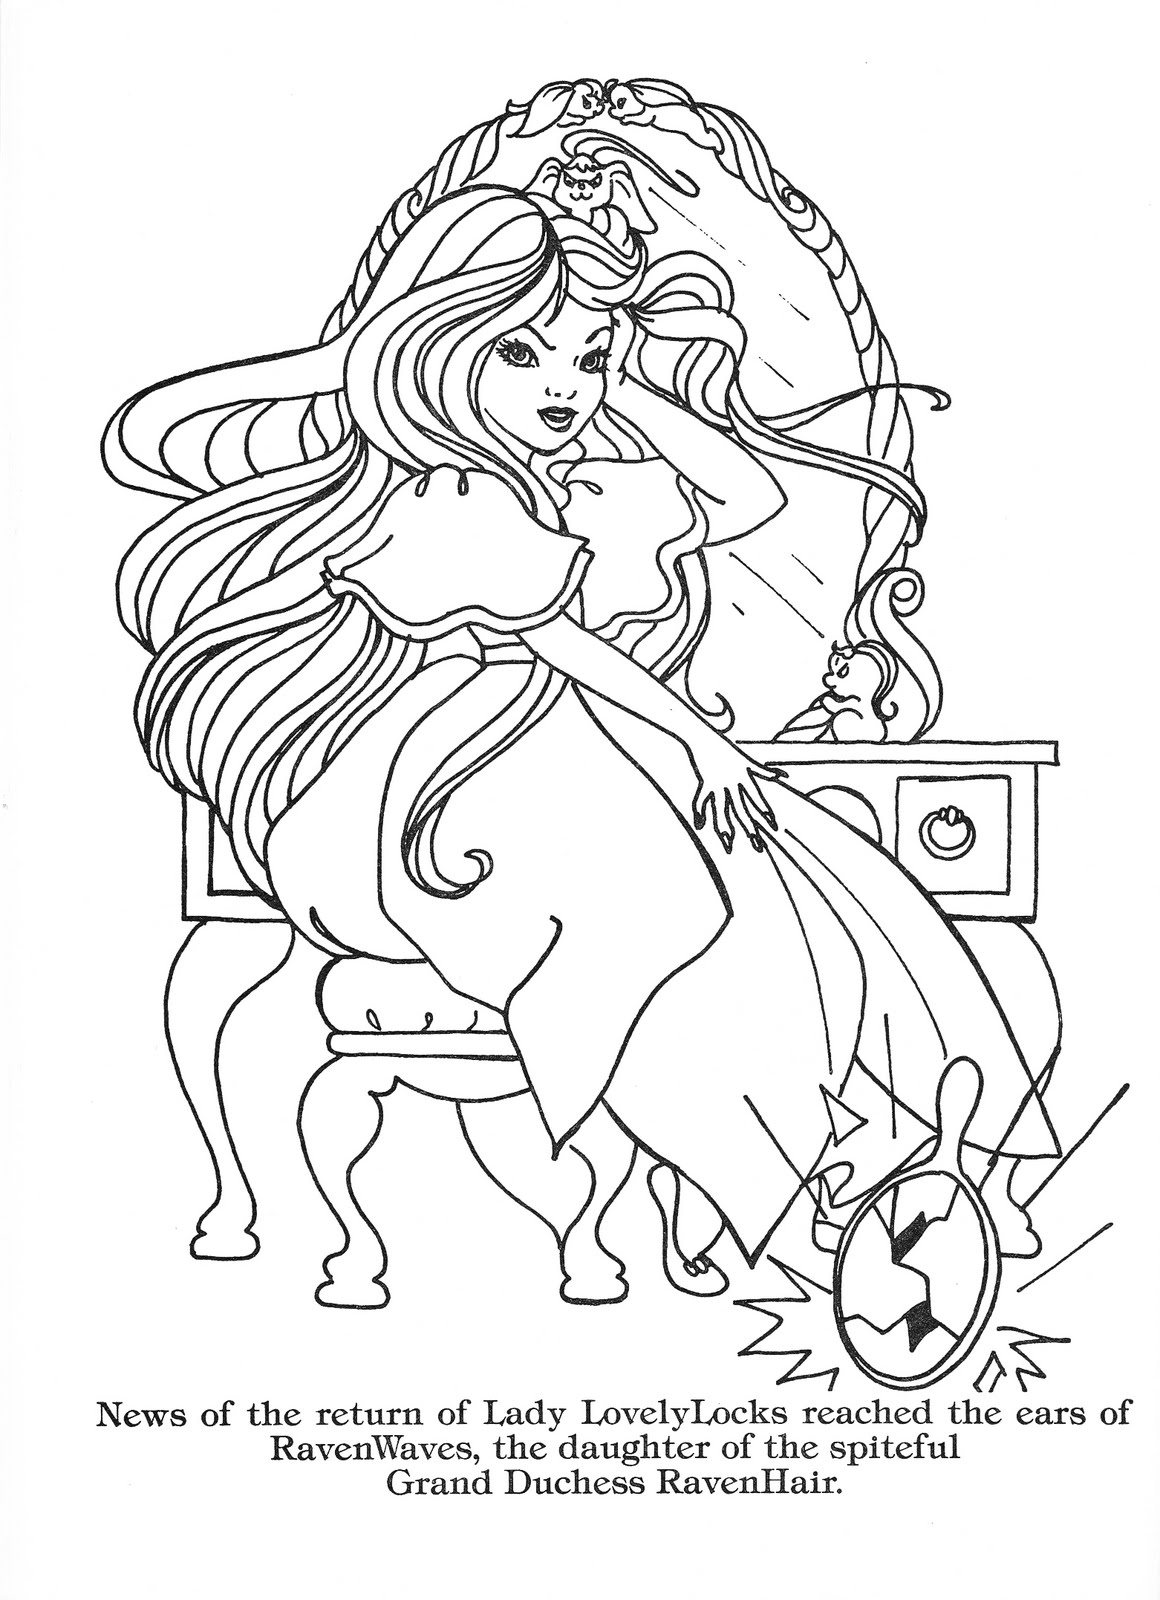 Lady Lovely Locks Coloring Pages Lady Lovely Locks The